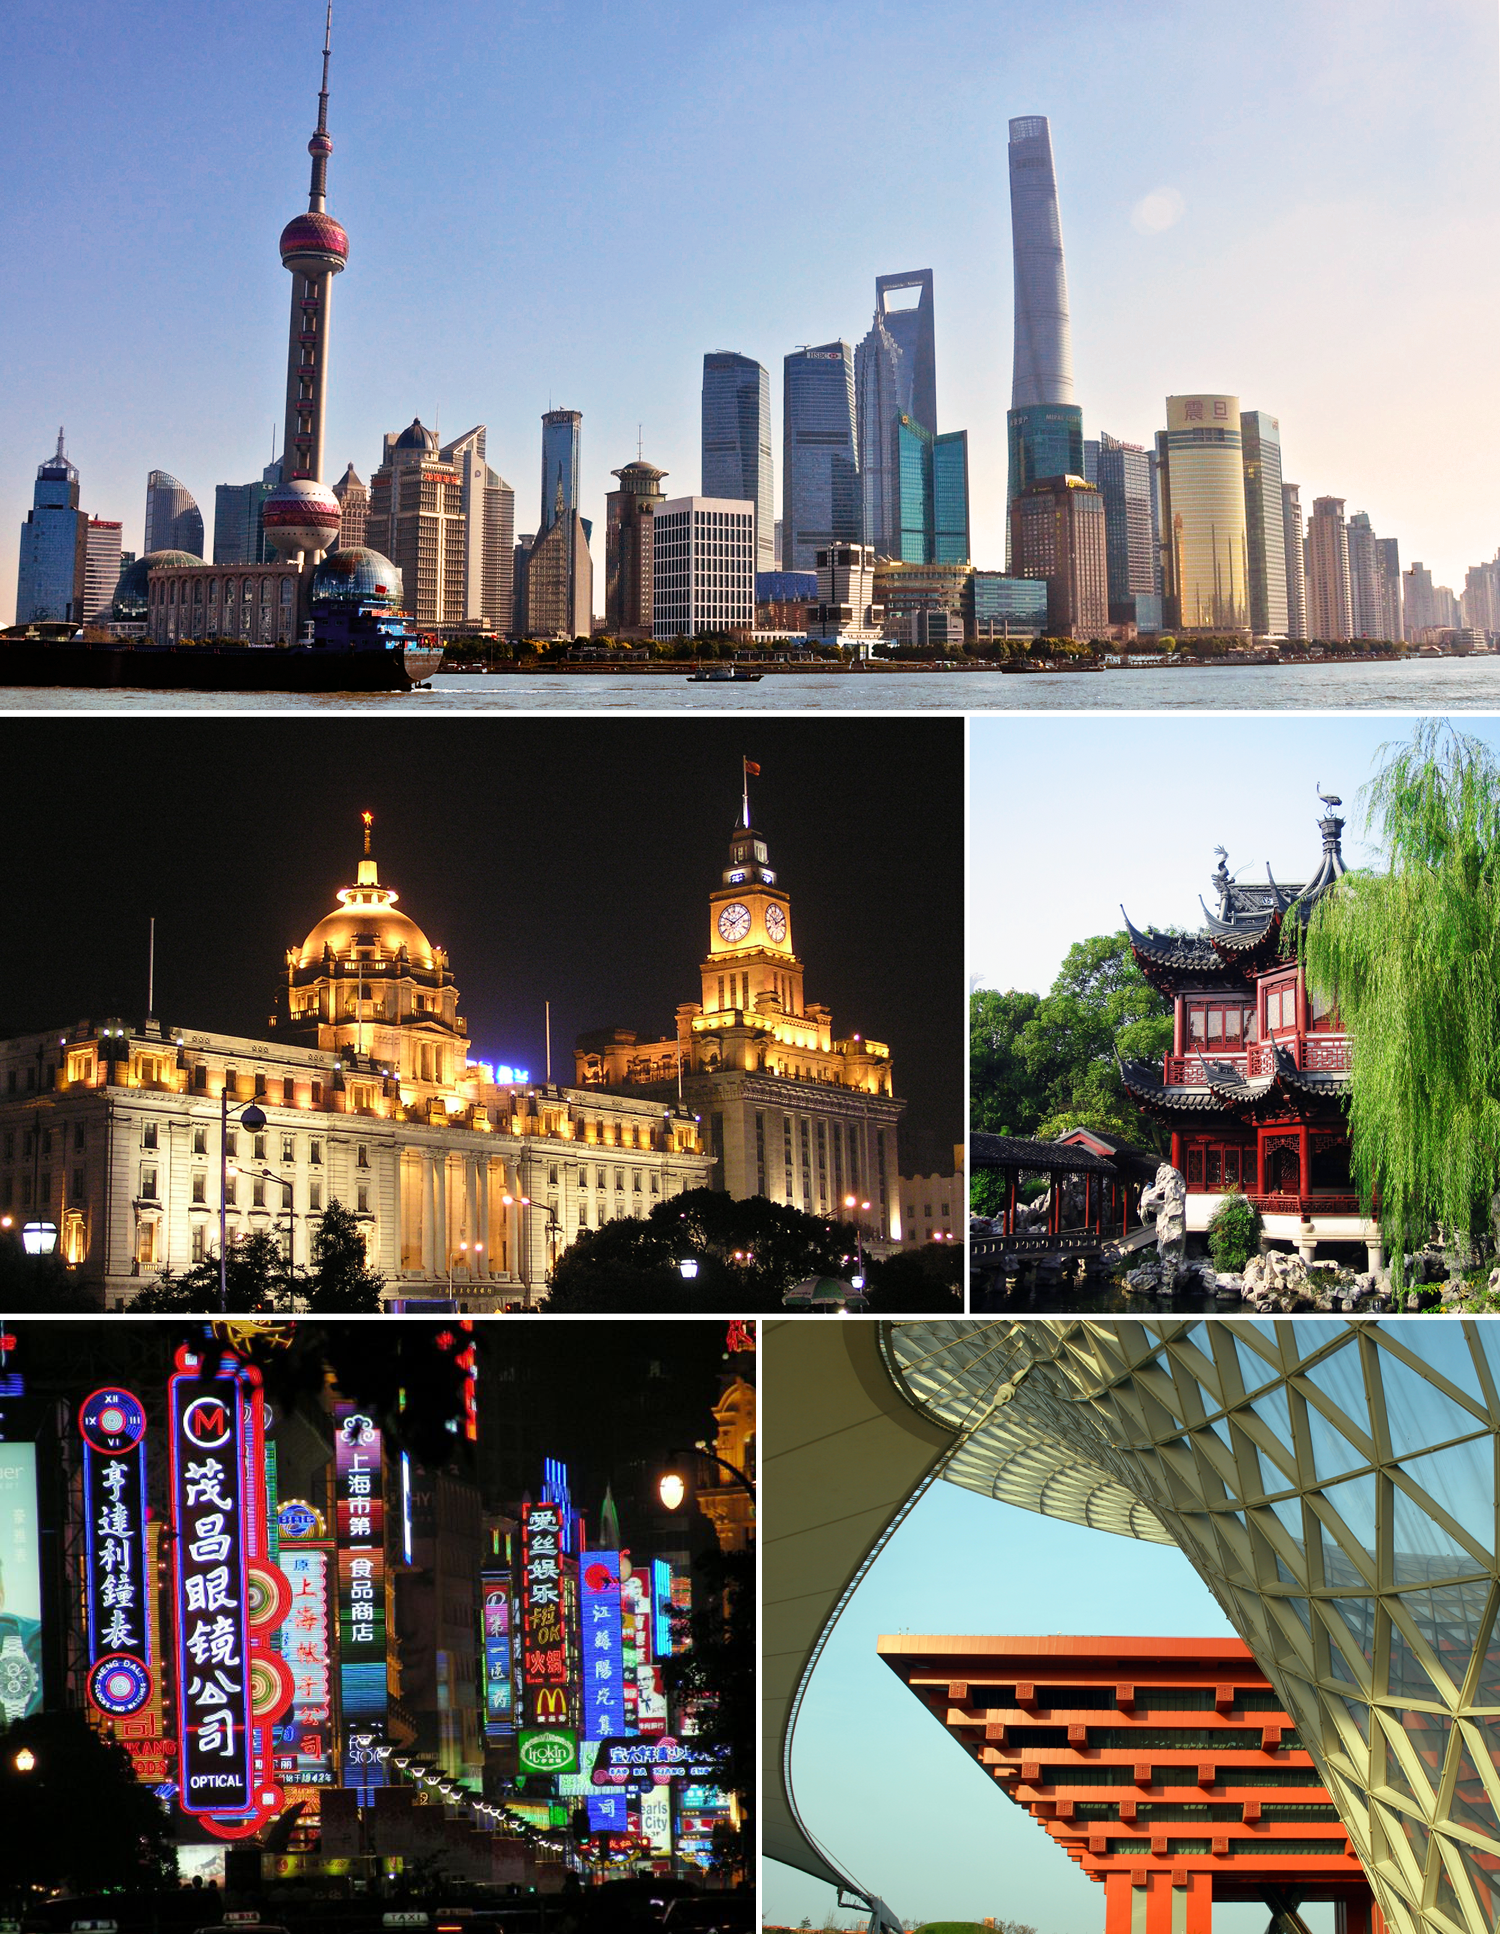 http://upload.wikimedia.org/wikipedia/commons/d/de/Shanghai_montage.png